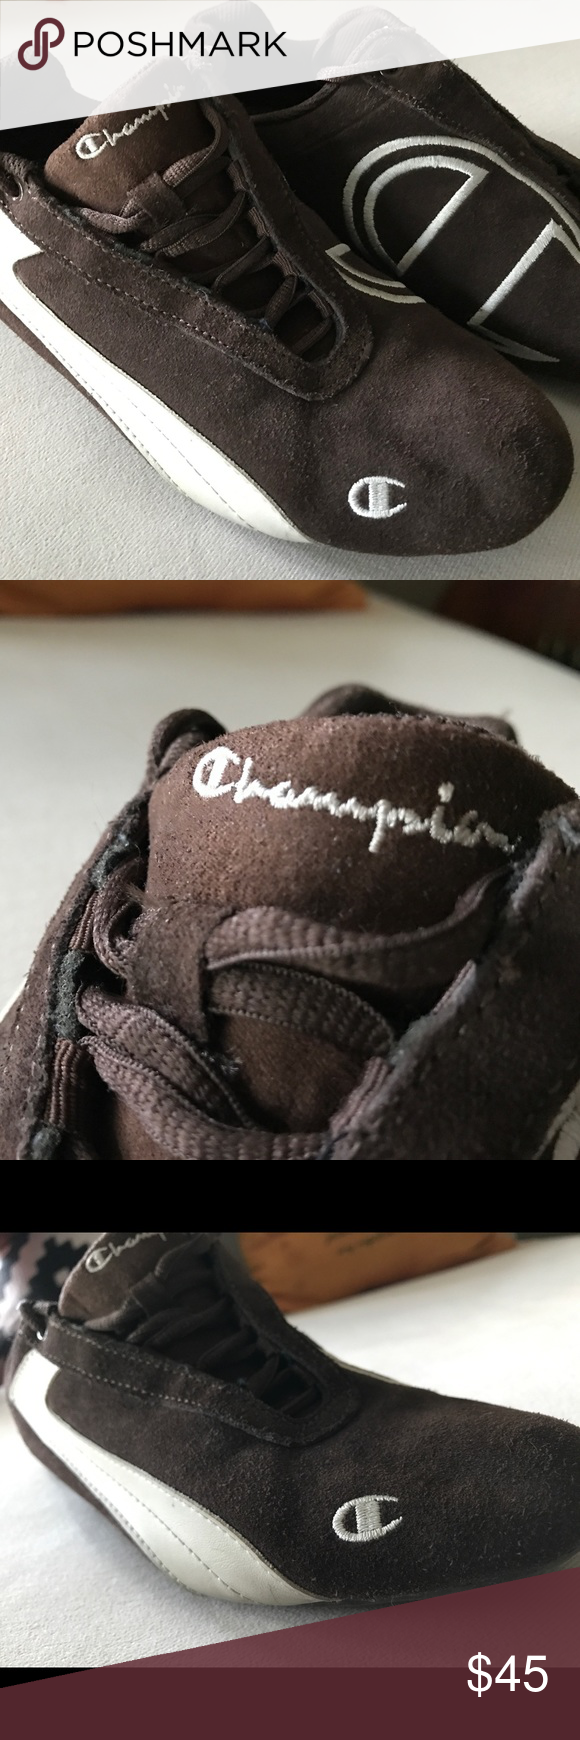 418fe4b70f8 Vintage Champion Chocolate Brown Suede Shoes Unisex. Super hype beast and  retro cool!